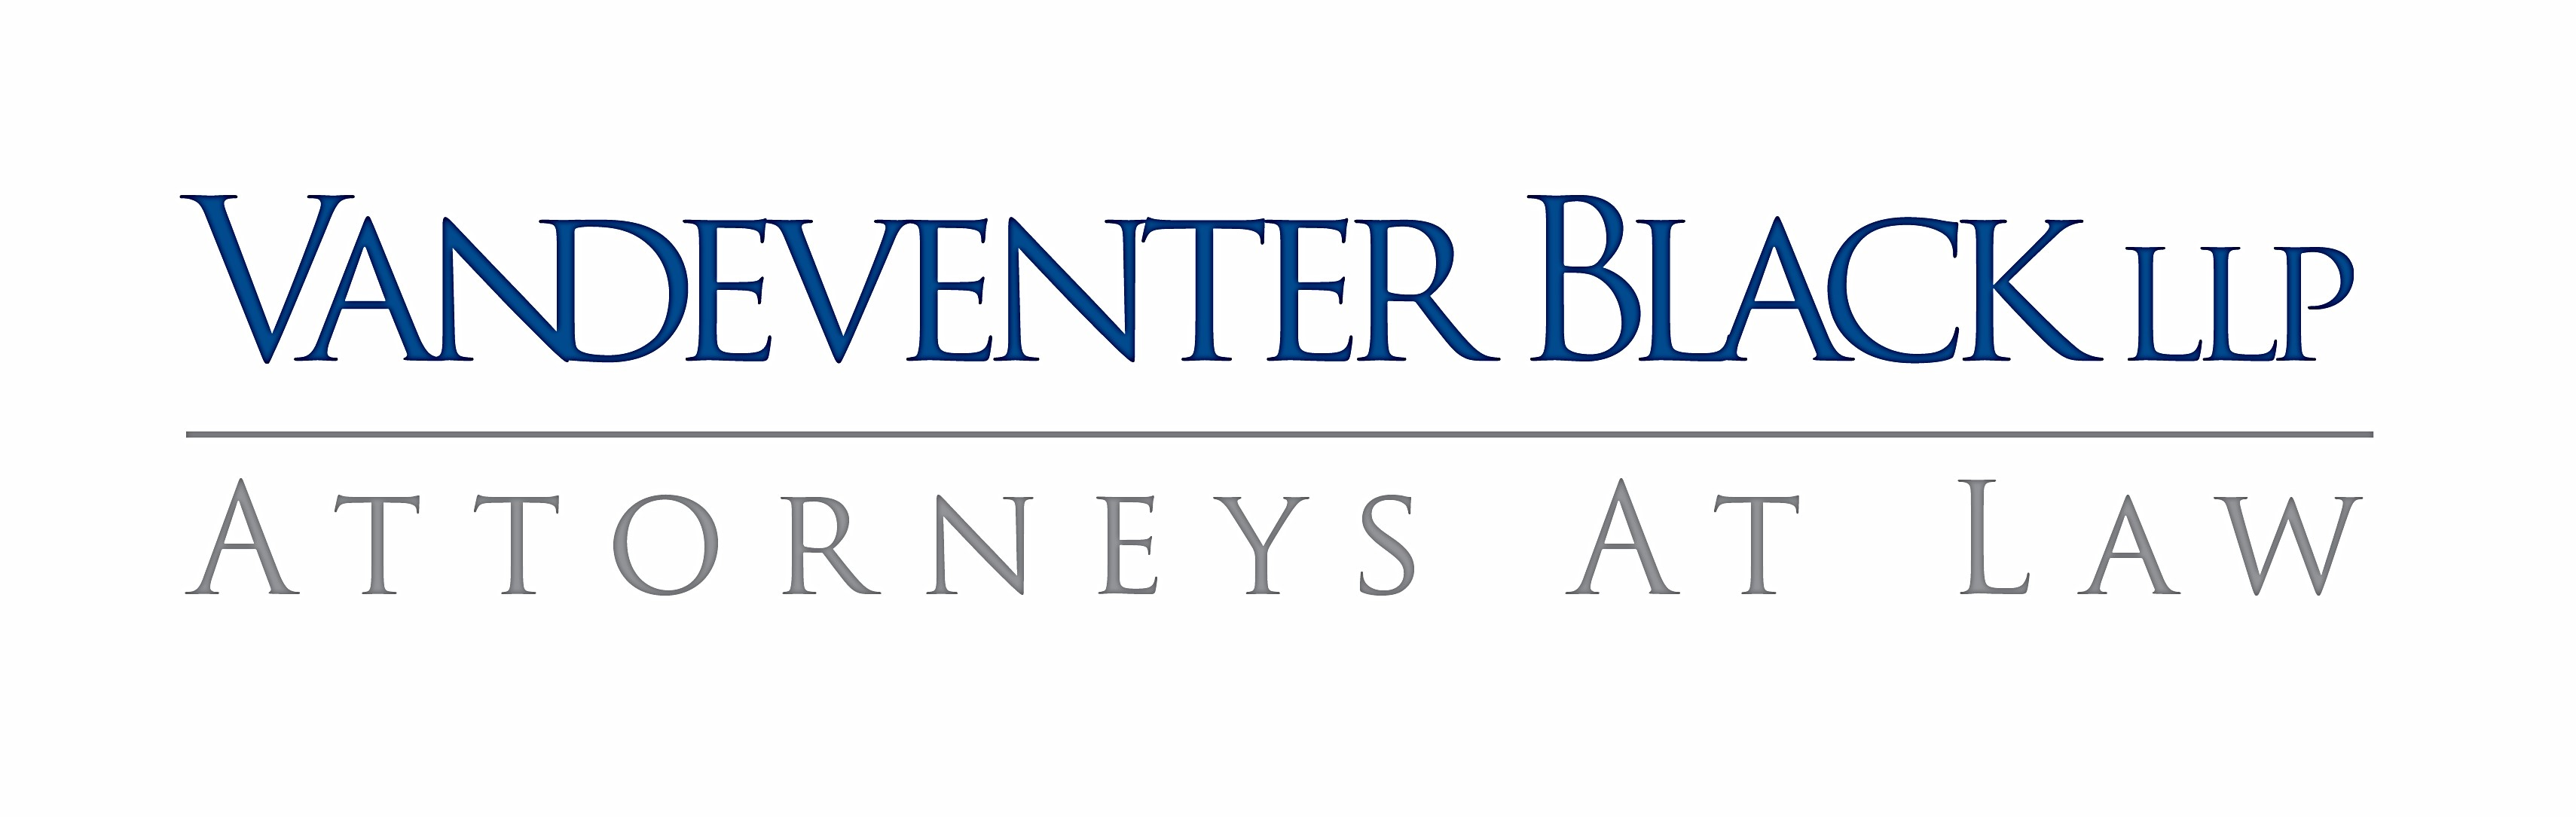 Two Vandeventer Black Attorneys Selected to Prestigious Virginia Law Foundation Fellows Class